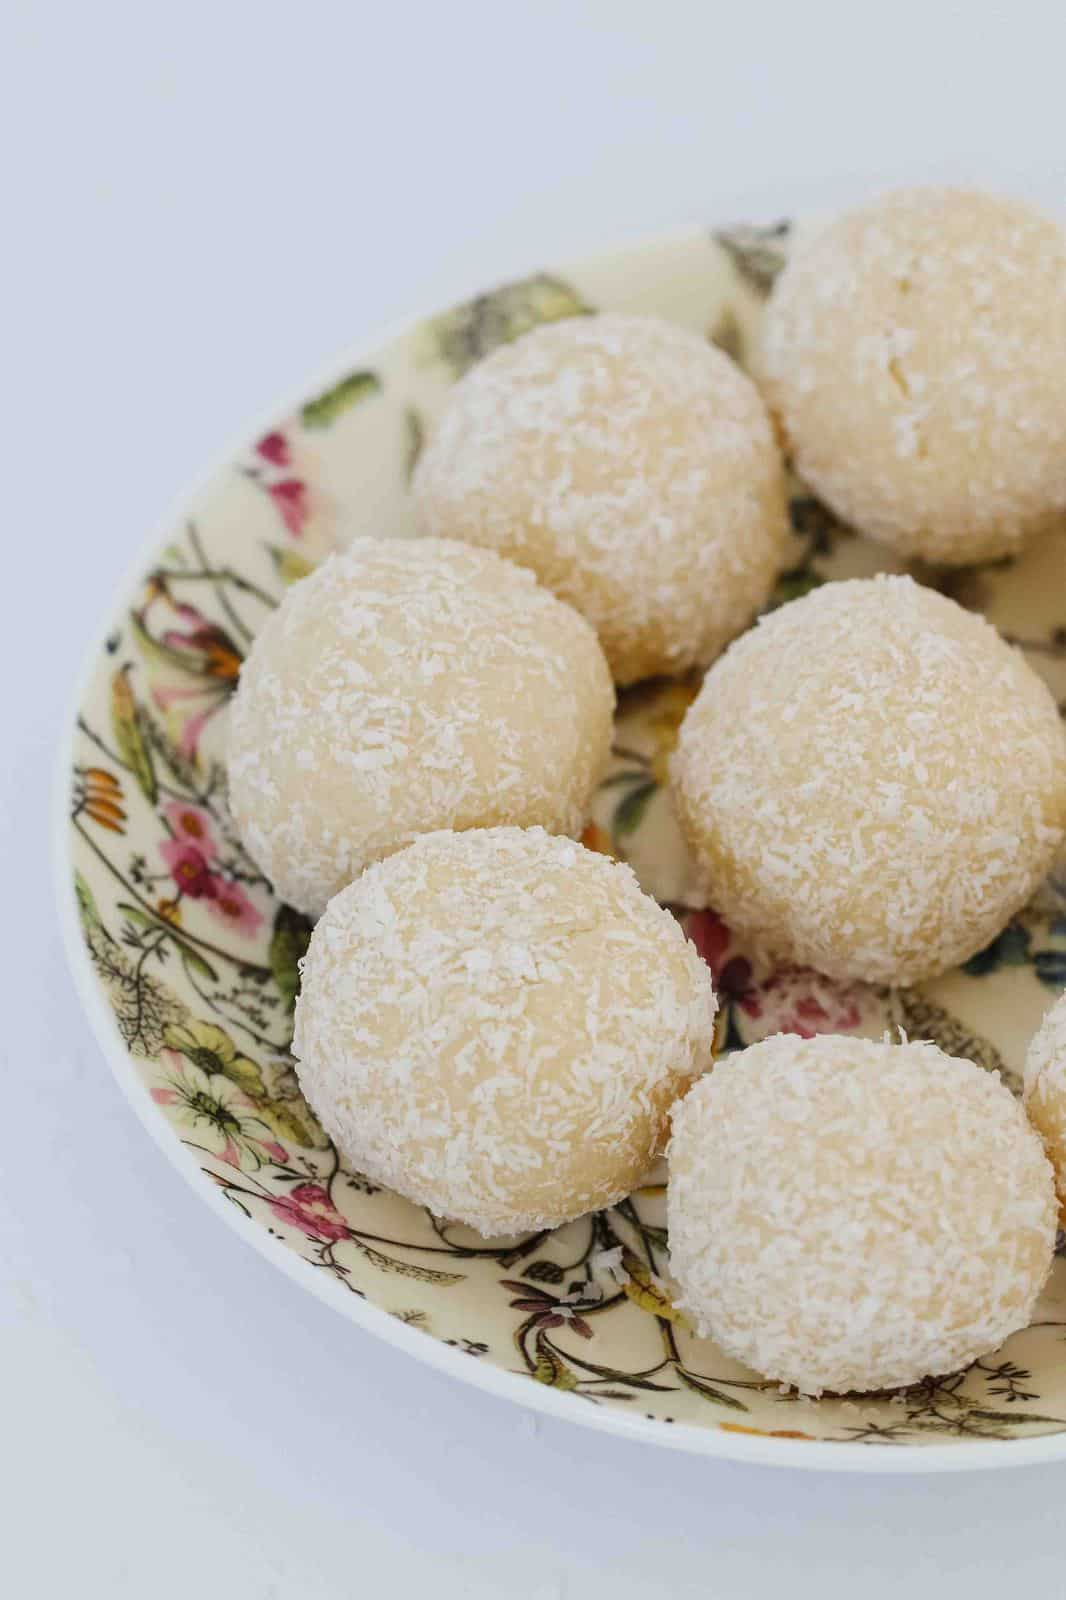 White chocolate balls on a serving plate.